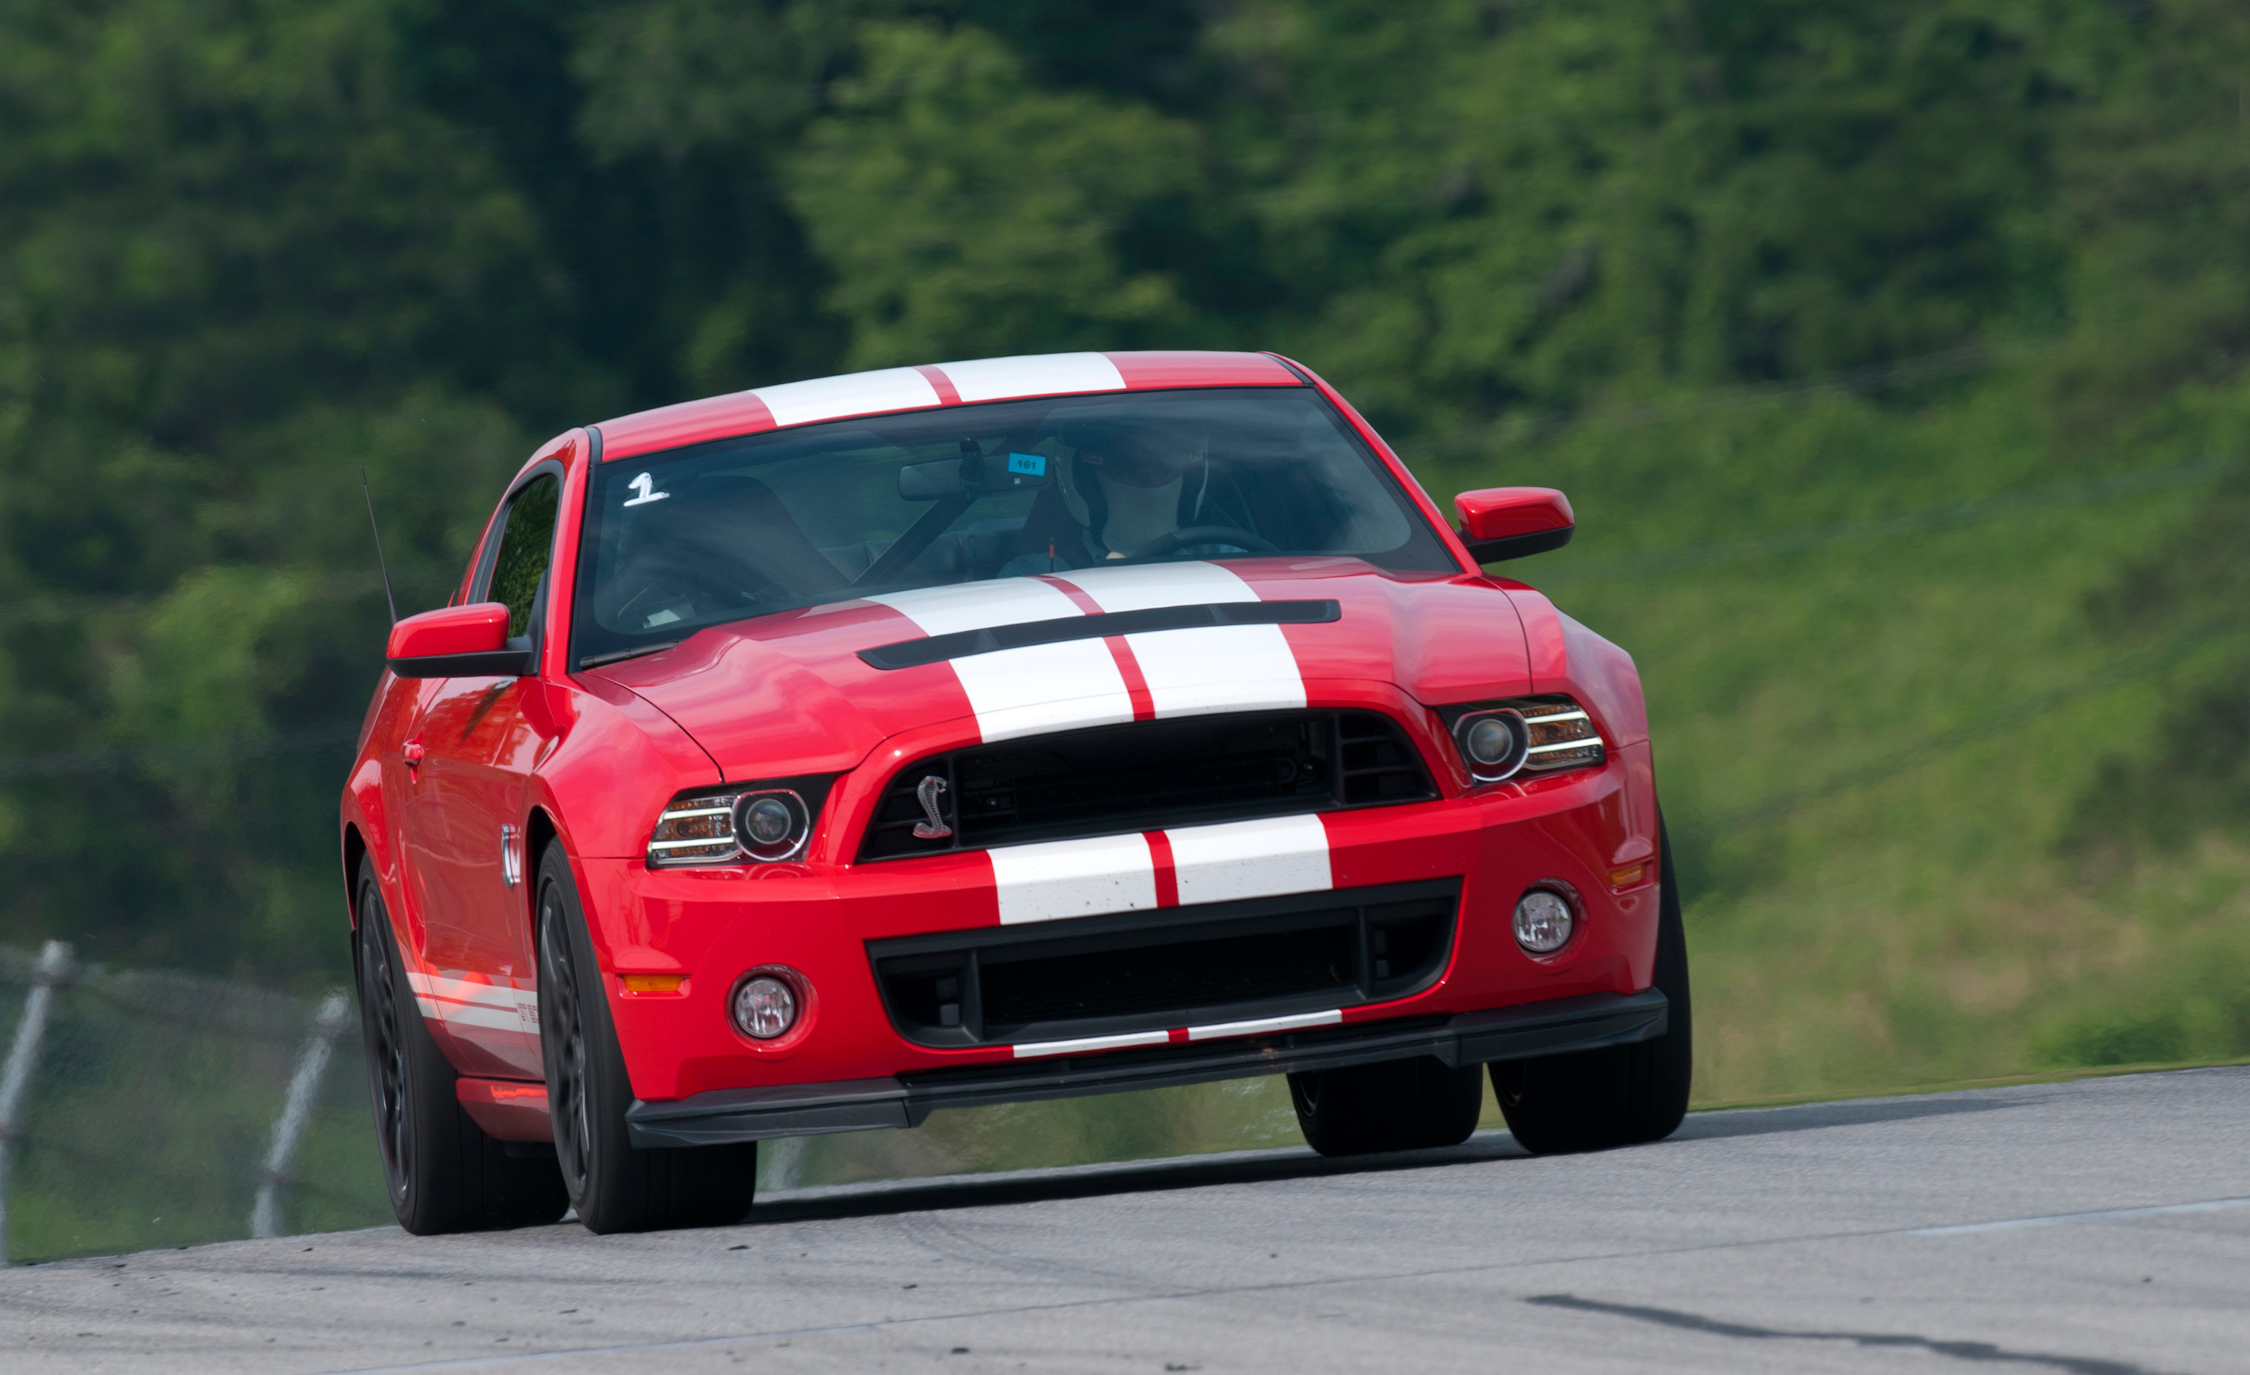 2013 Ford Mustang Shelby GT500 Red Test Drive Front View (Photo 35 of 47)